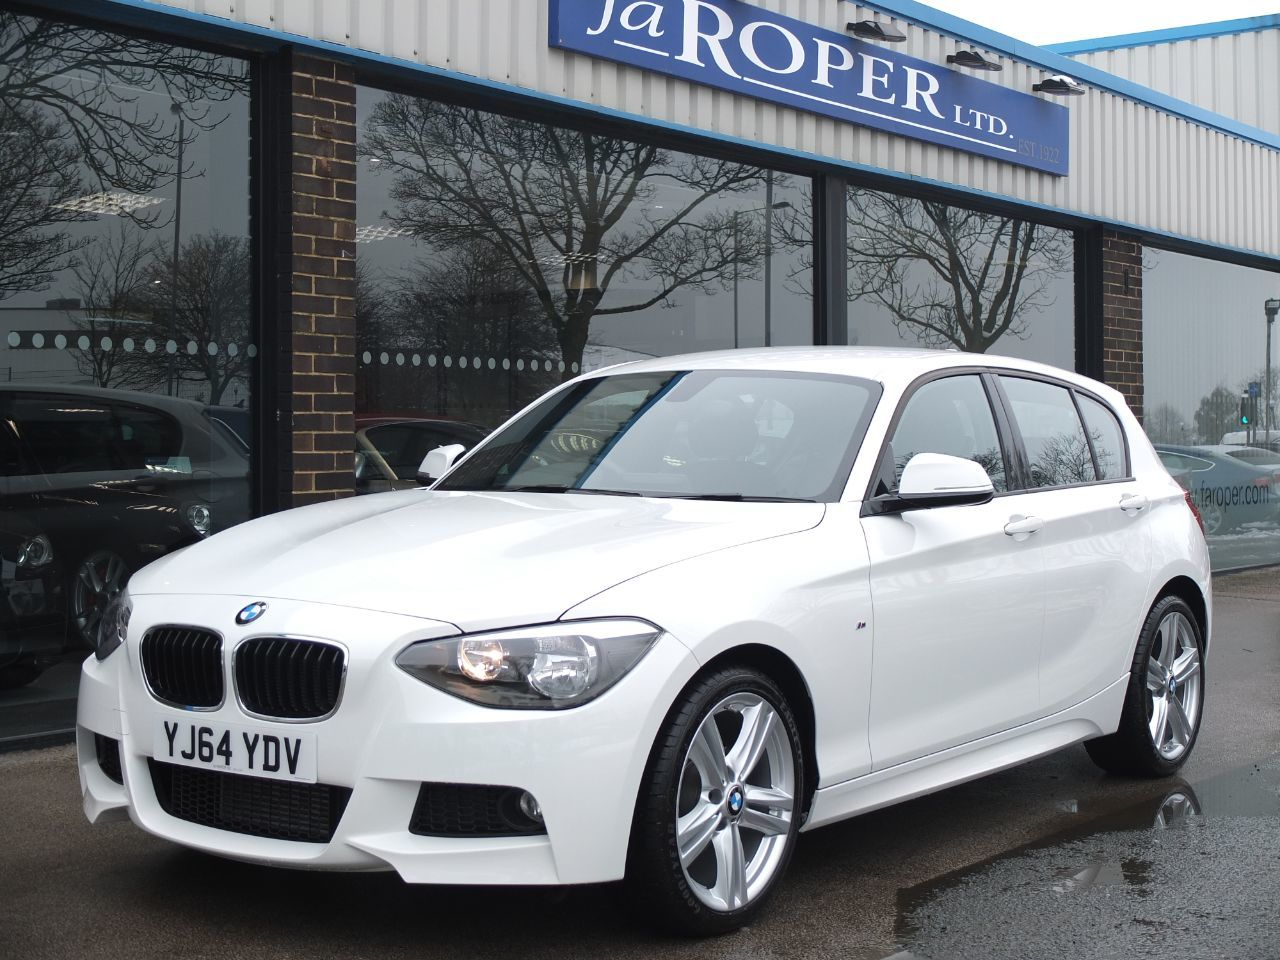 BMW 1 Series 2.0 118d M Sport 5 door Auto +++Spec Hatchback Diesel Alpine WhiteBMW 1 Series 2.0 118d M Sport 5 door Auto +++Spec Hatchback Diesel Alpine White at fa Roper Ltd Bradford